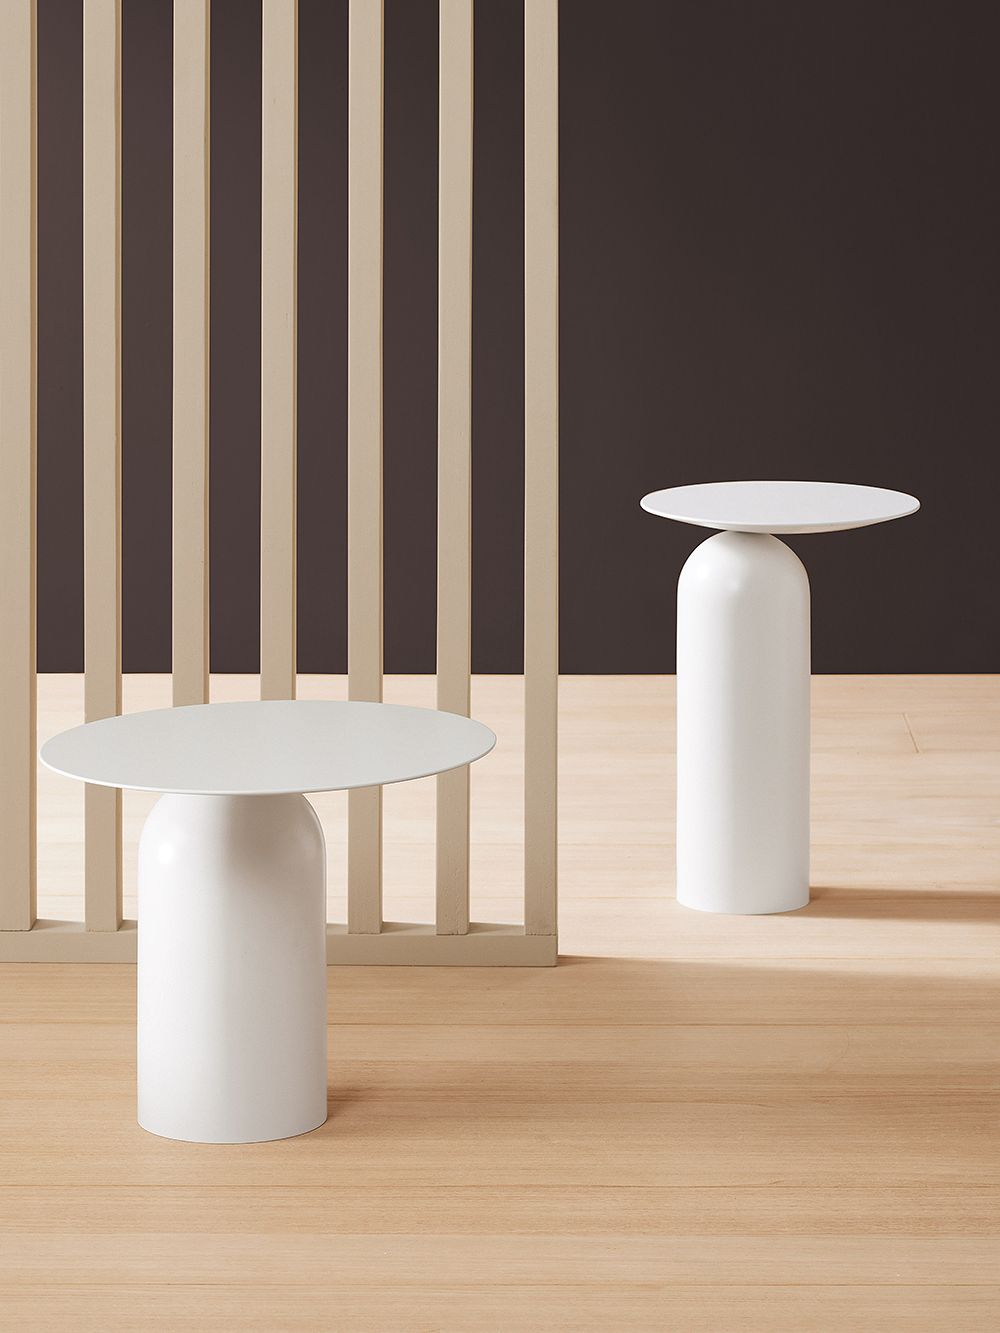 Disco side table by Basta